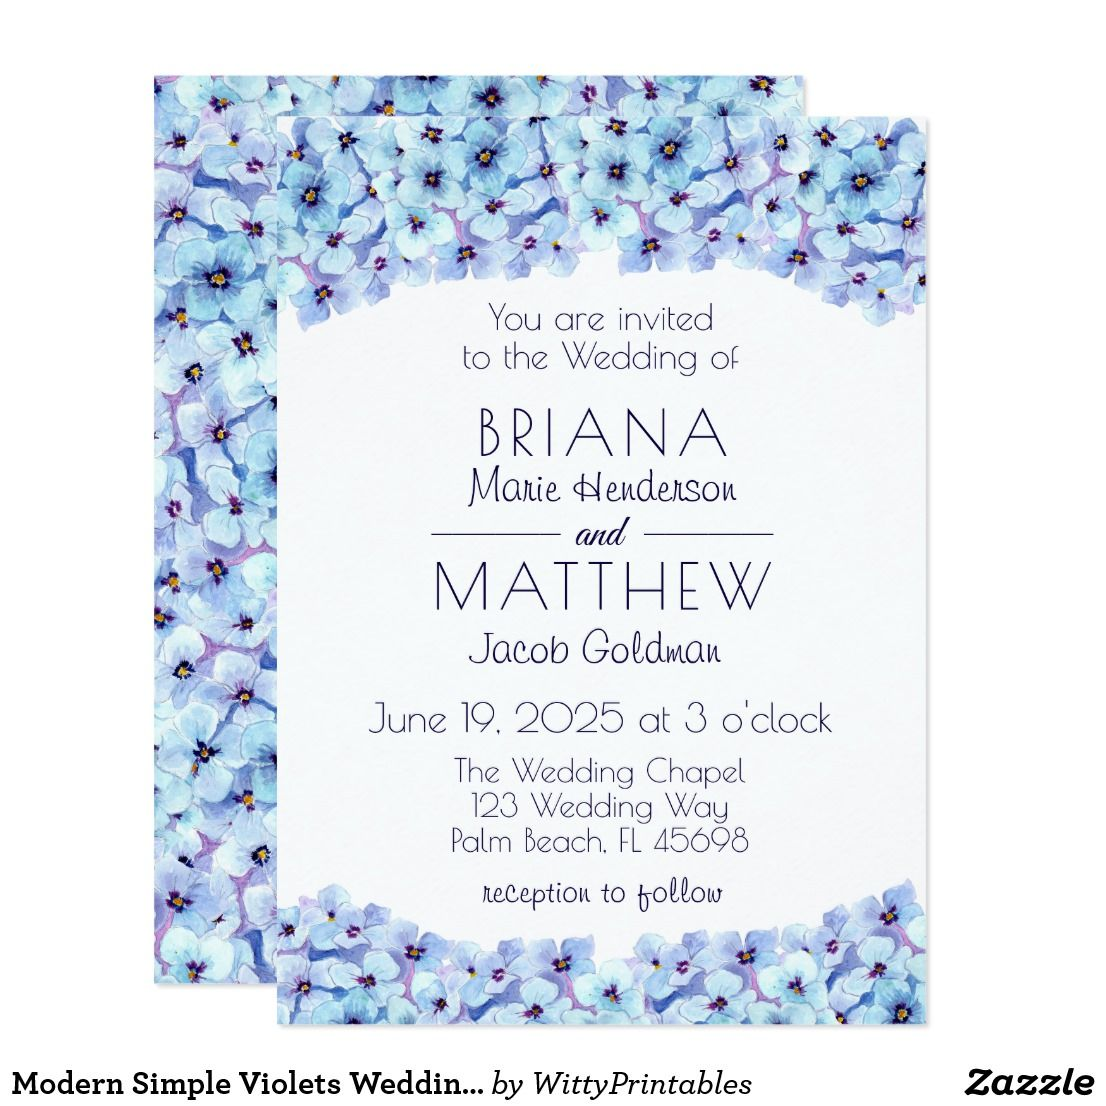 Modern Simple Violets Wedding Invitation | all things wedding ...